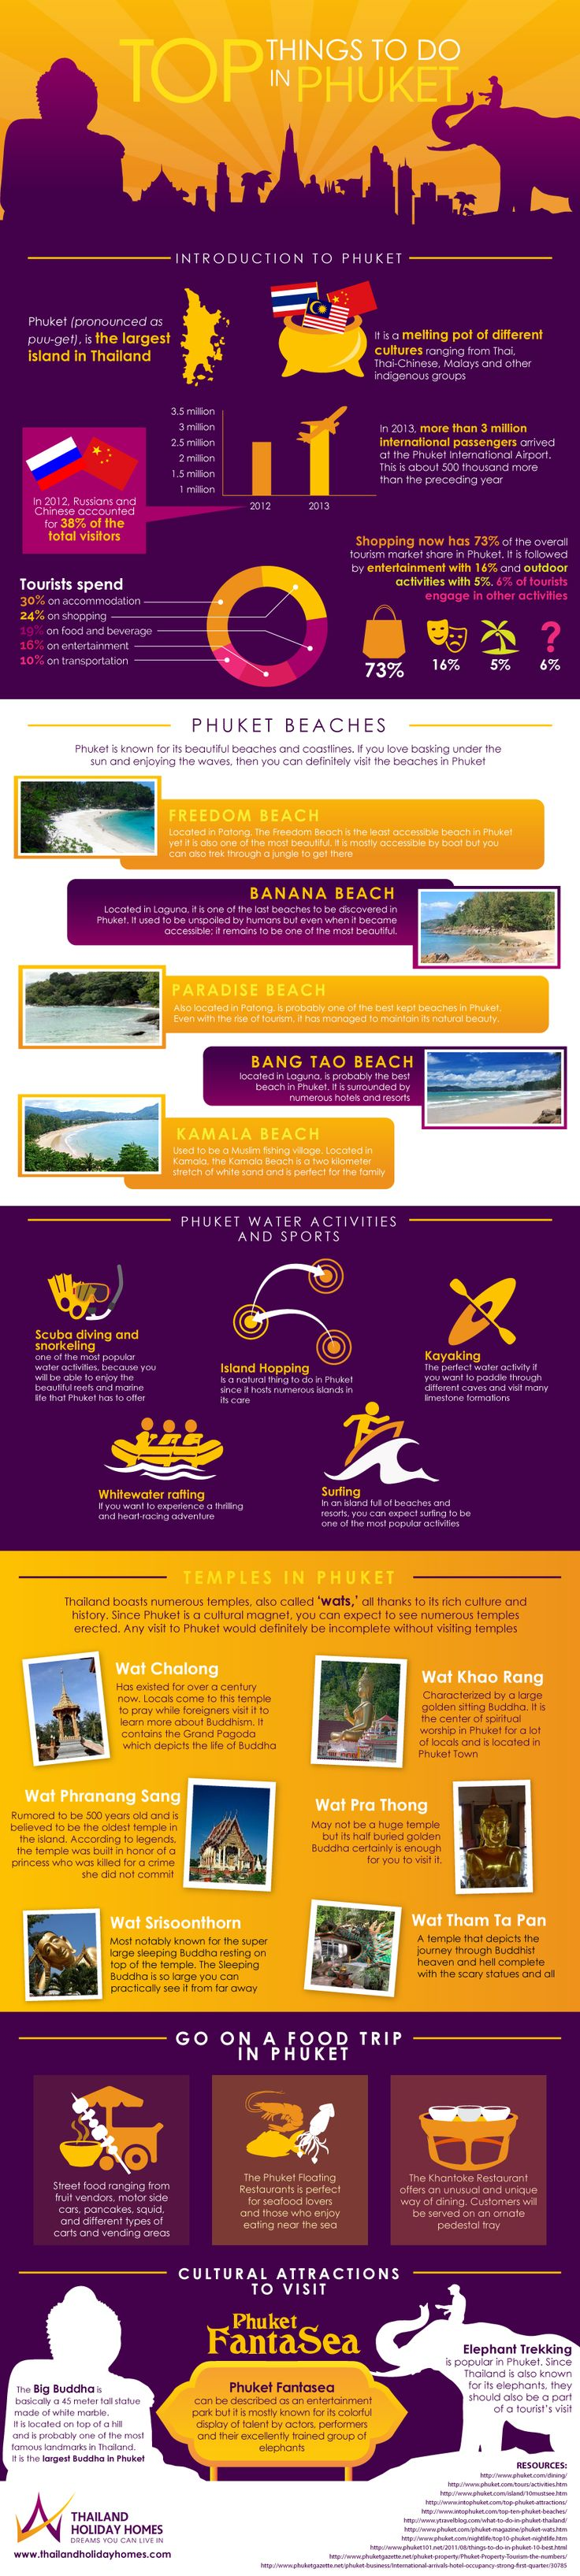 Top Attractions and Activities in Phuket, Thailand​  Thinking of visiting the beautiful island of Phuket? Want to know what activities the island caters for, things to do, places to see? If you are interested in finding this out but have not got the time to spend hours researching and just want a snap-shot over-view of what you can find on the island then check out our fun and informative infographic which we have created to serve just this purpose!